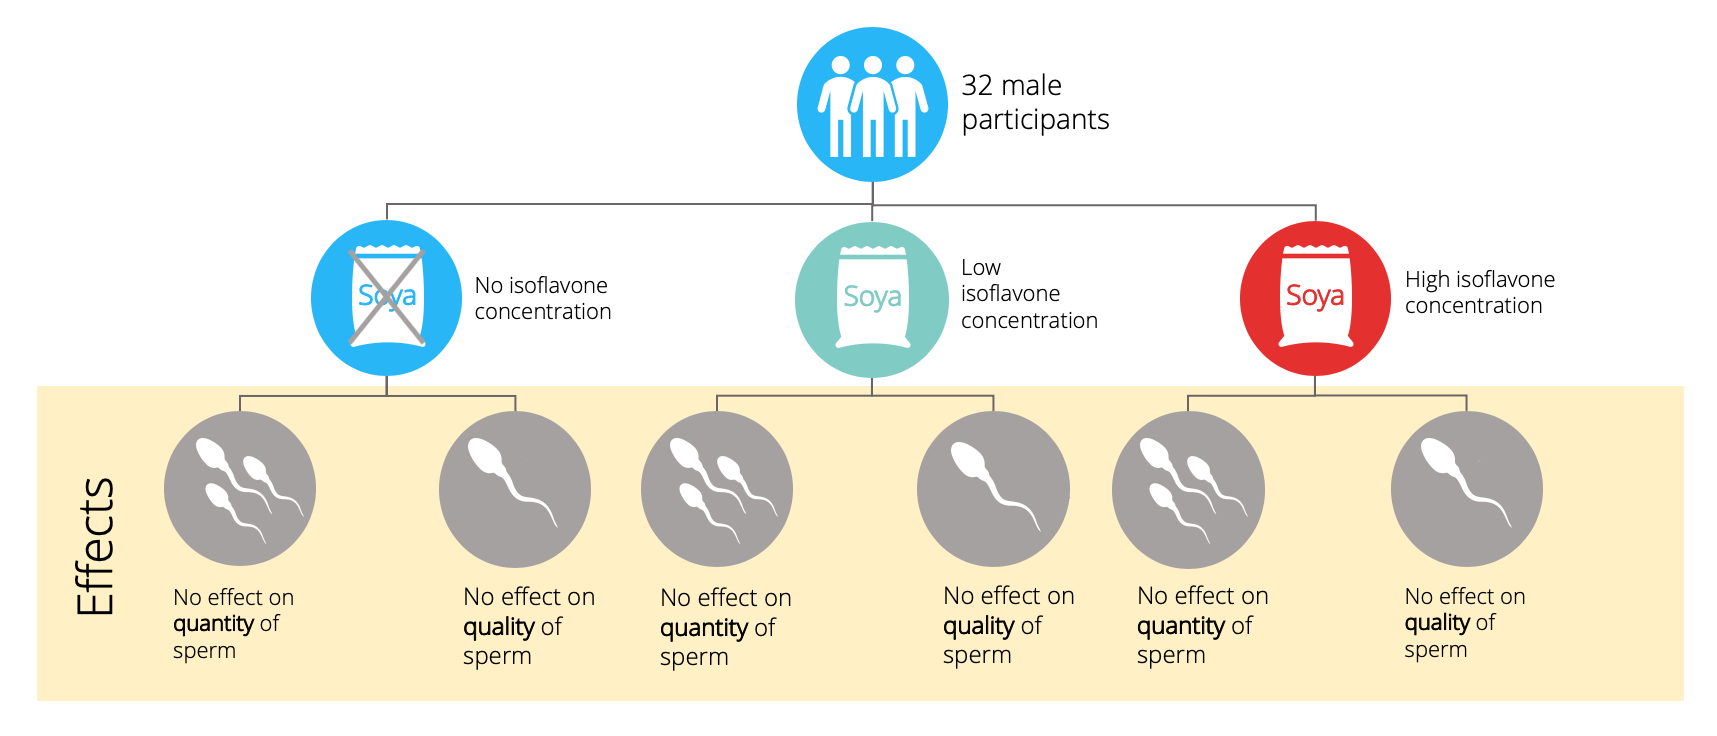 Illustration of the clinical trial that shows no effect of isoflavone supplementation on sperm quantity and quality.